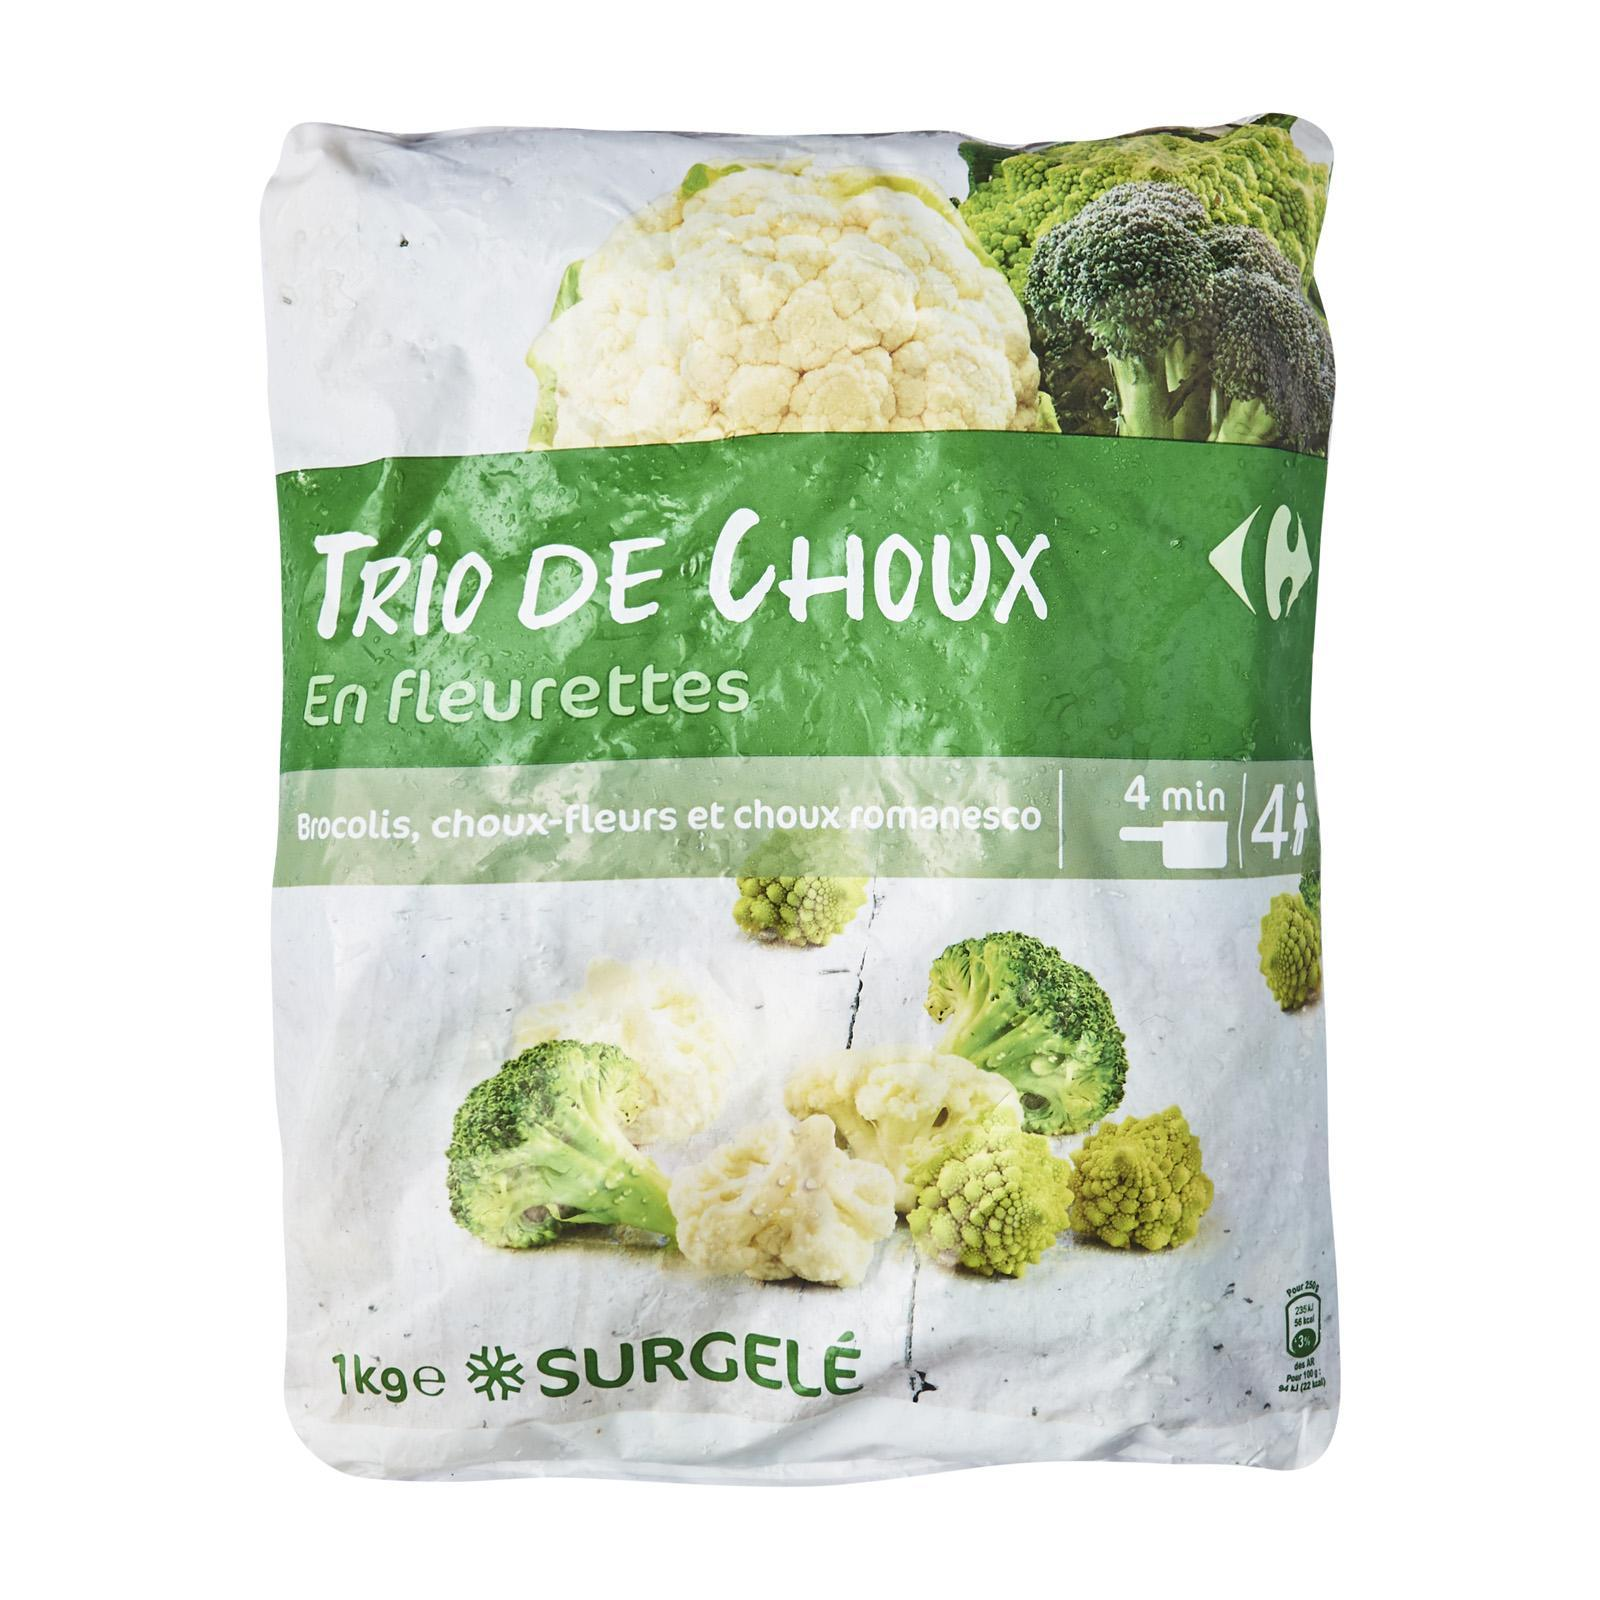 Carrefour Mix Of Cabbages In Florets - Frozen - By Le Petit Depot By Redmart.